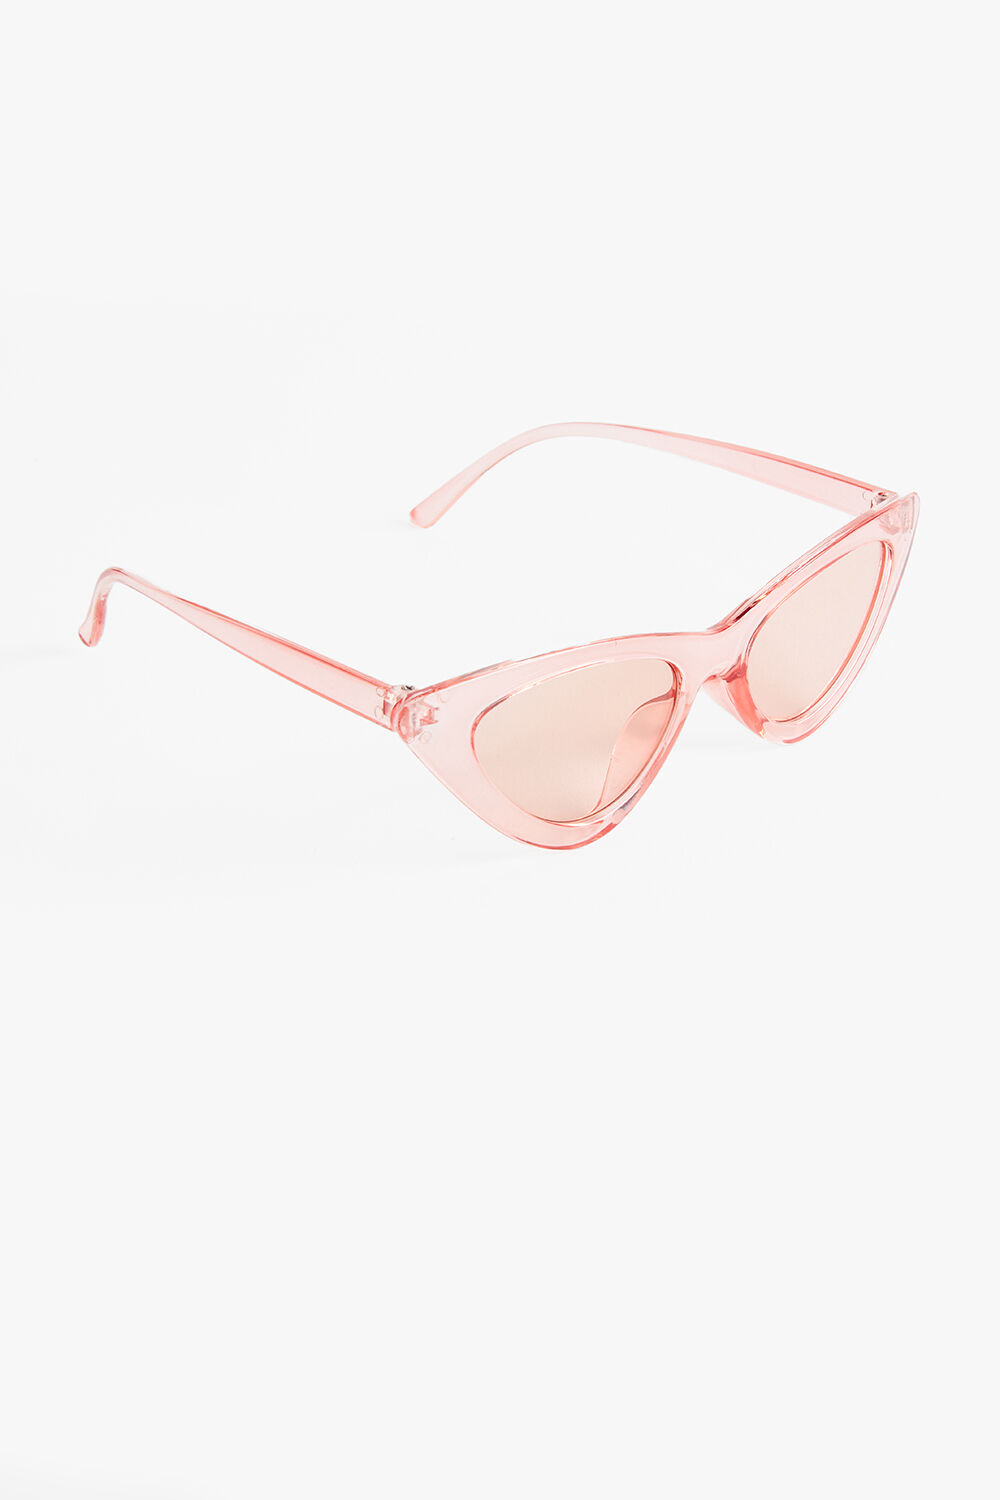 AVA CAT EYE SUNGLASSES in colour PARADISE PINK